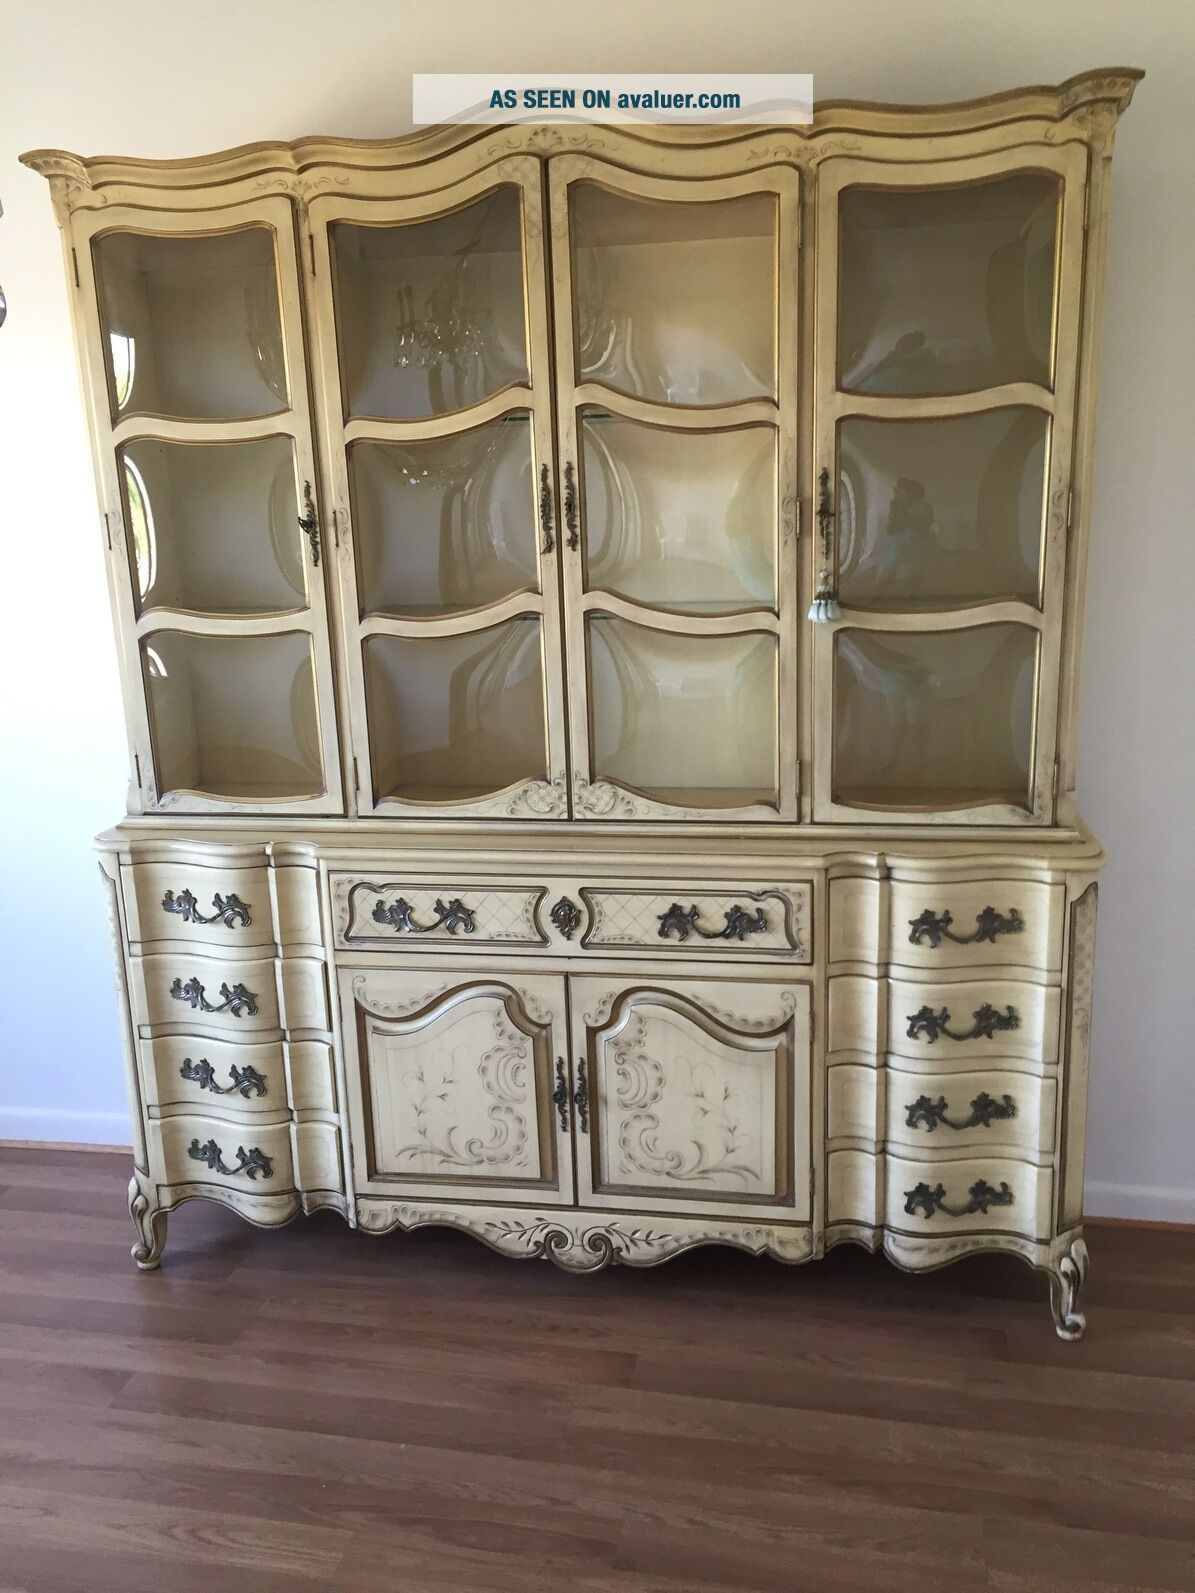 KARGES BREAKFRONT / CHINA CABINET FRENCH PROVINCIAL Hand Painted